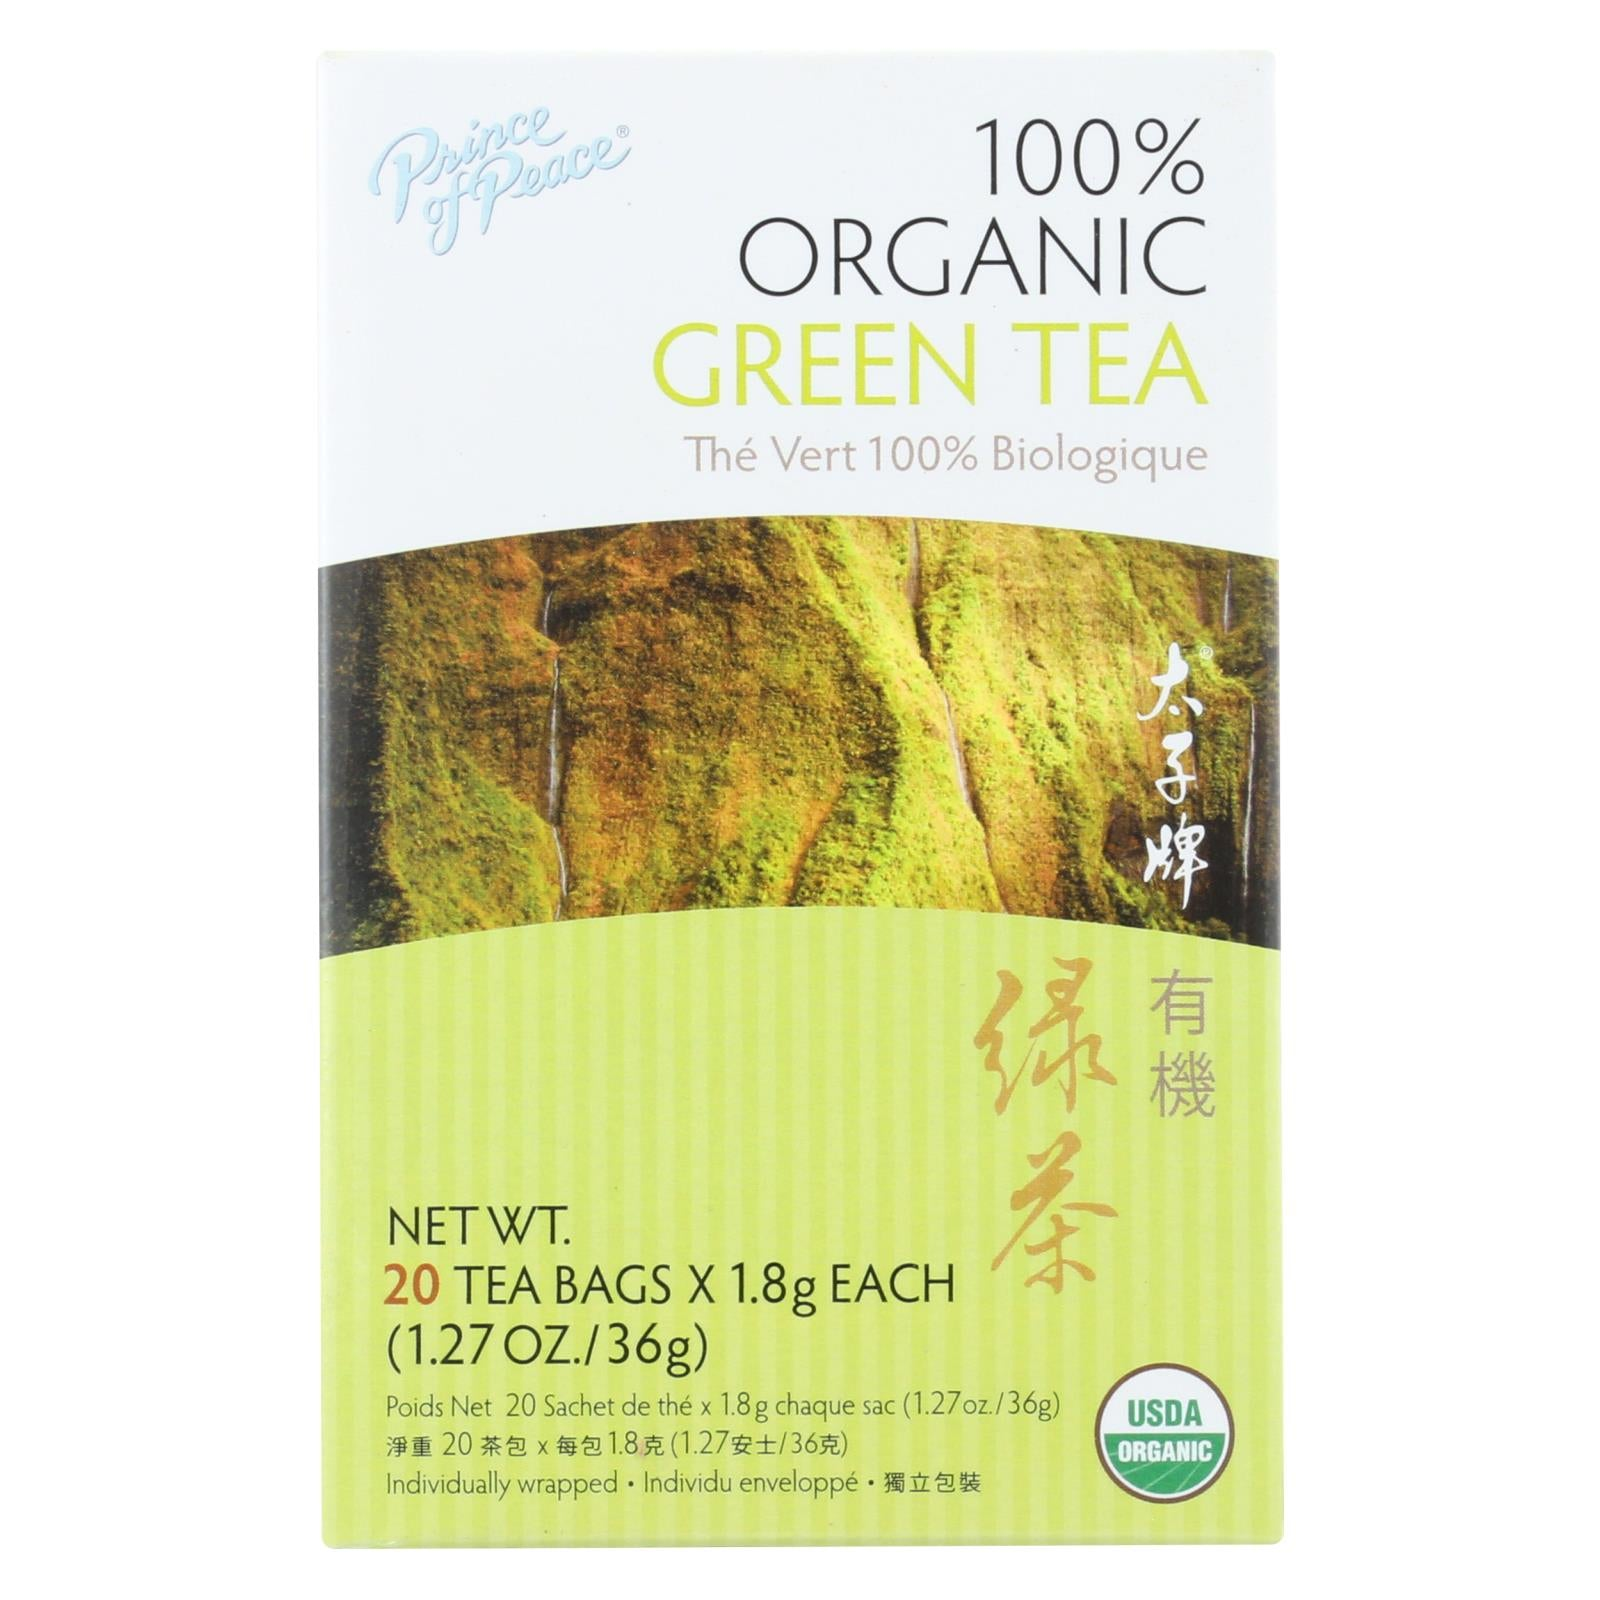 Buy Prince of Peace Organic Green Tea - 20 Tea Bags - Green Tea from Veroeco.com